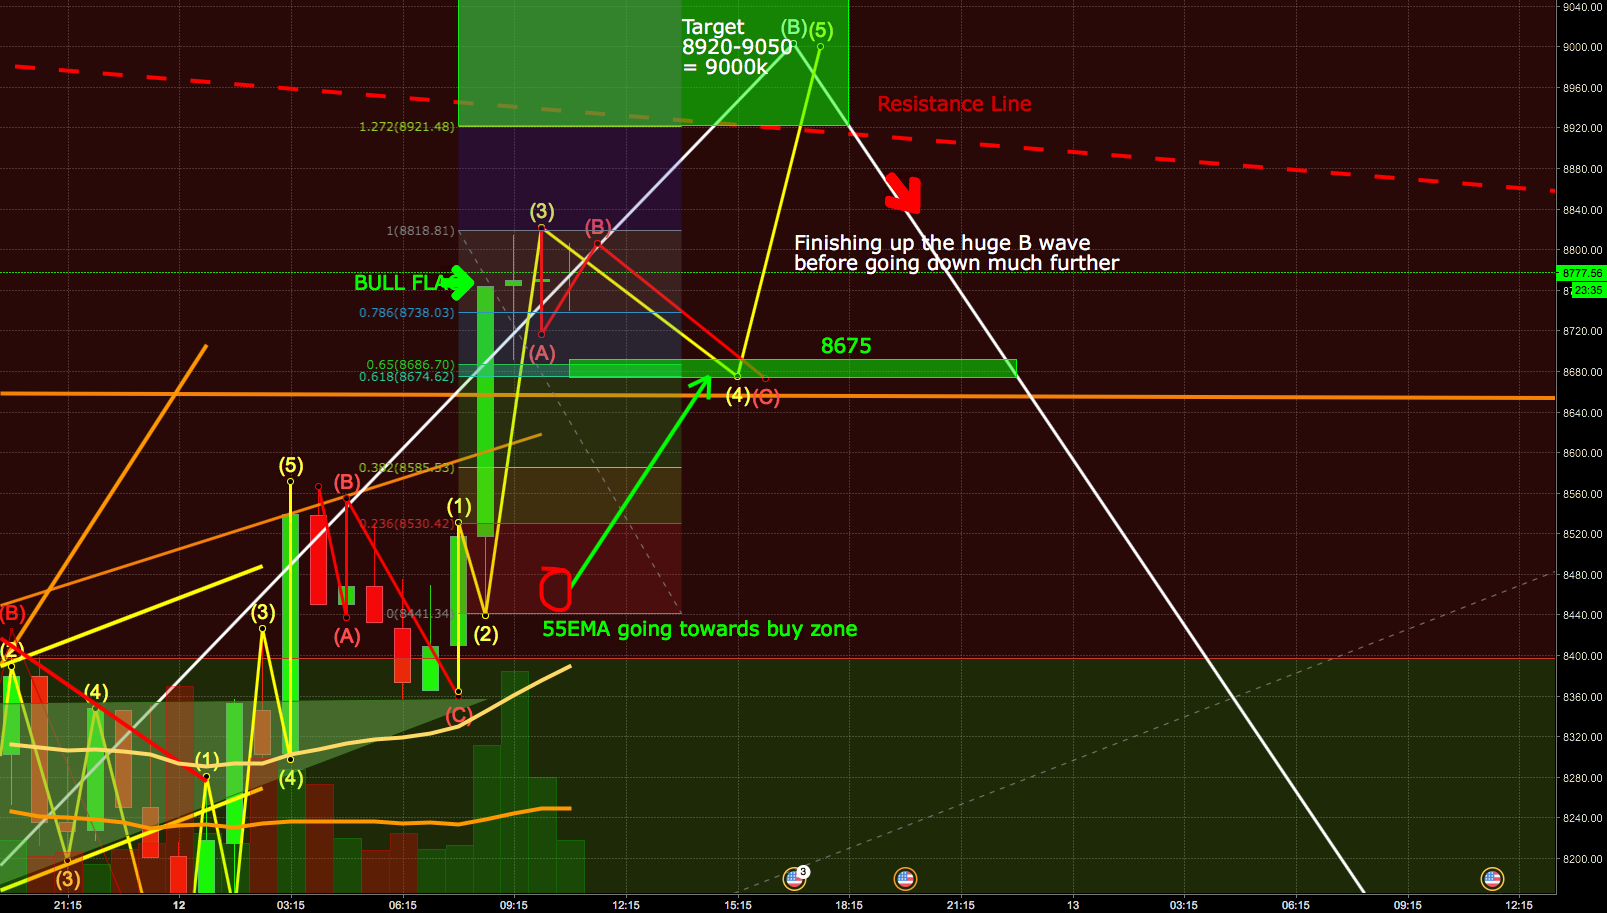 Bitcoin almost done BIG-B-Wave before down on sharp C-wave